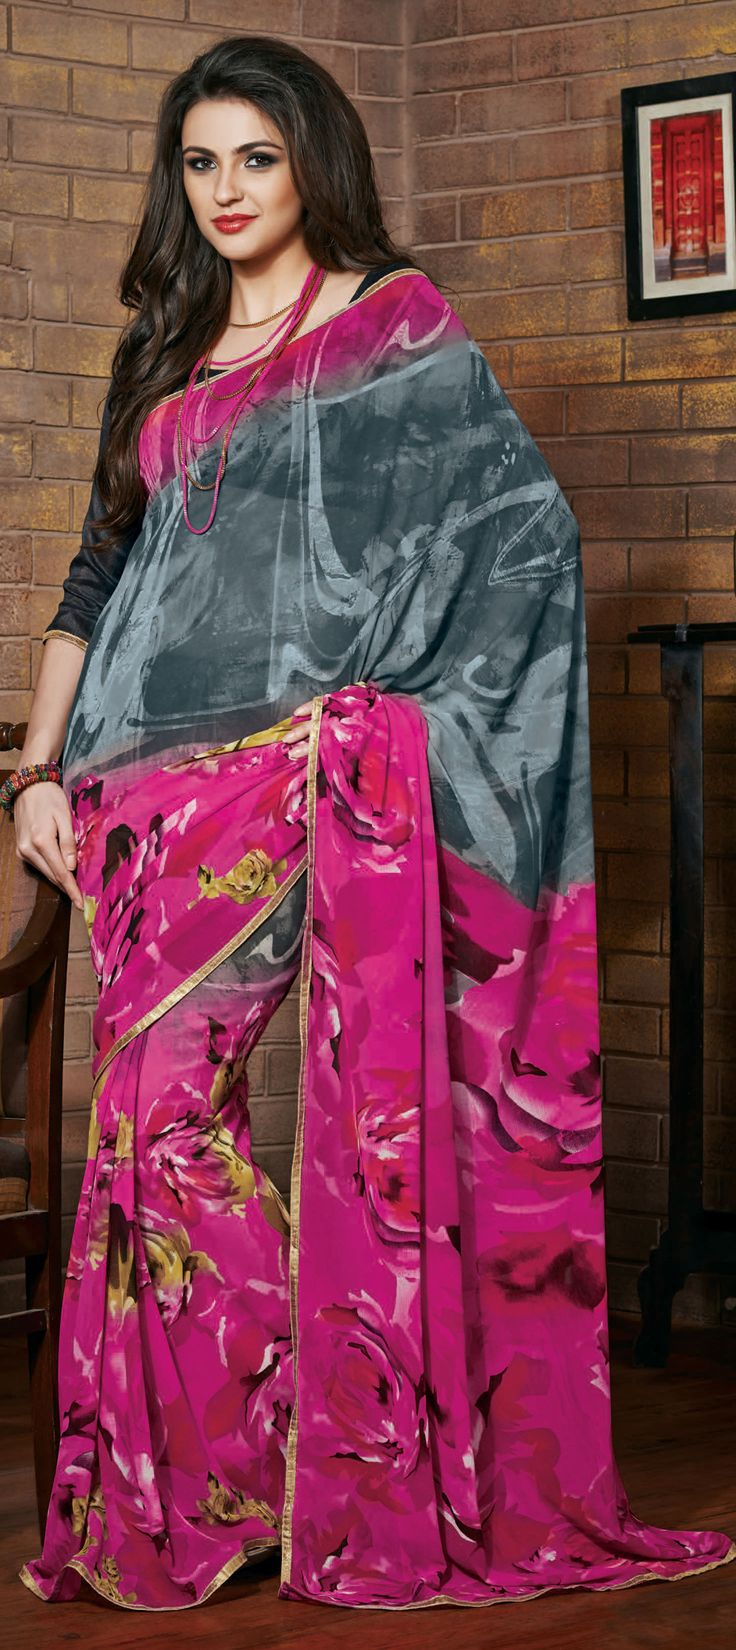 154490: Dual Tone #saree in floral prints -  This style is hit for parties and cocktails. Shop now!  #RepublicDay #Sale #Partywear #prints #Trends2015